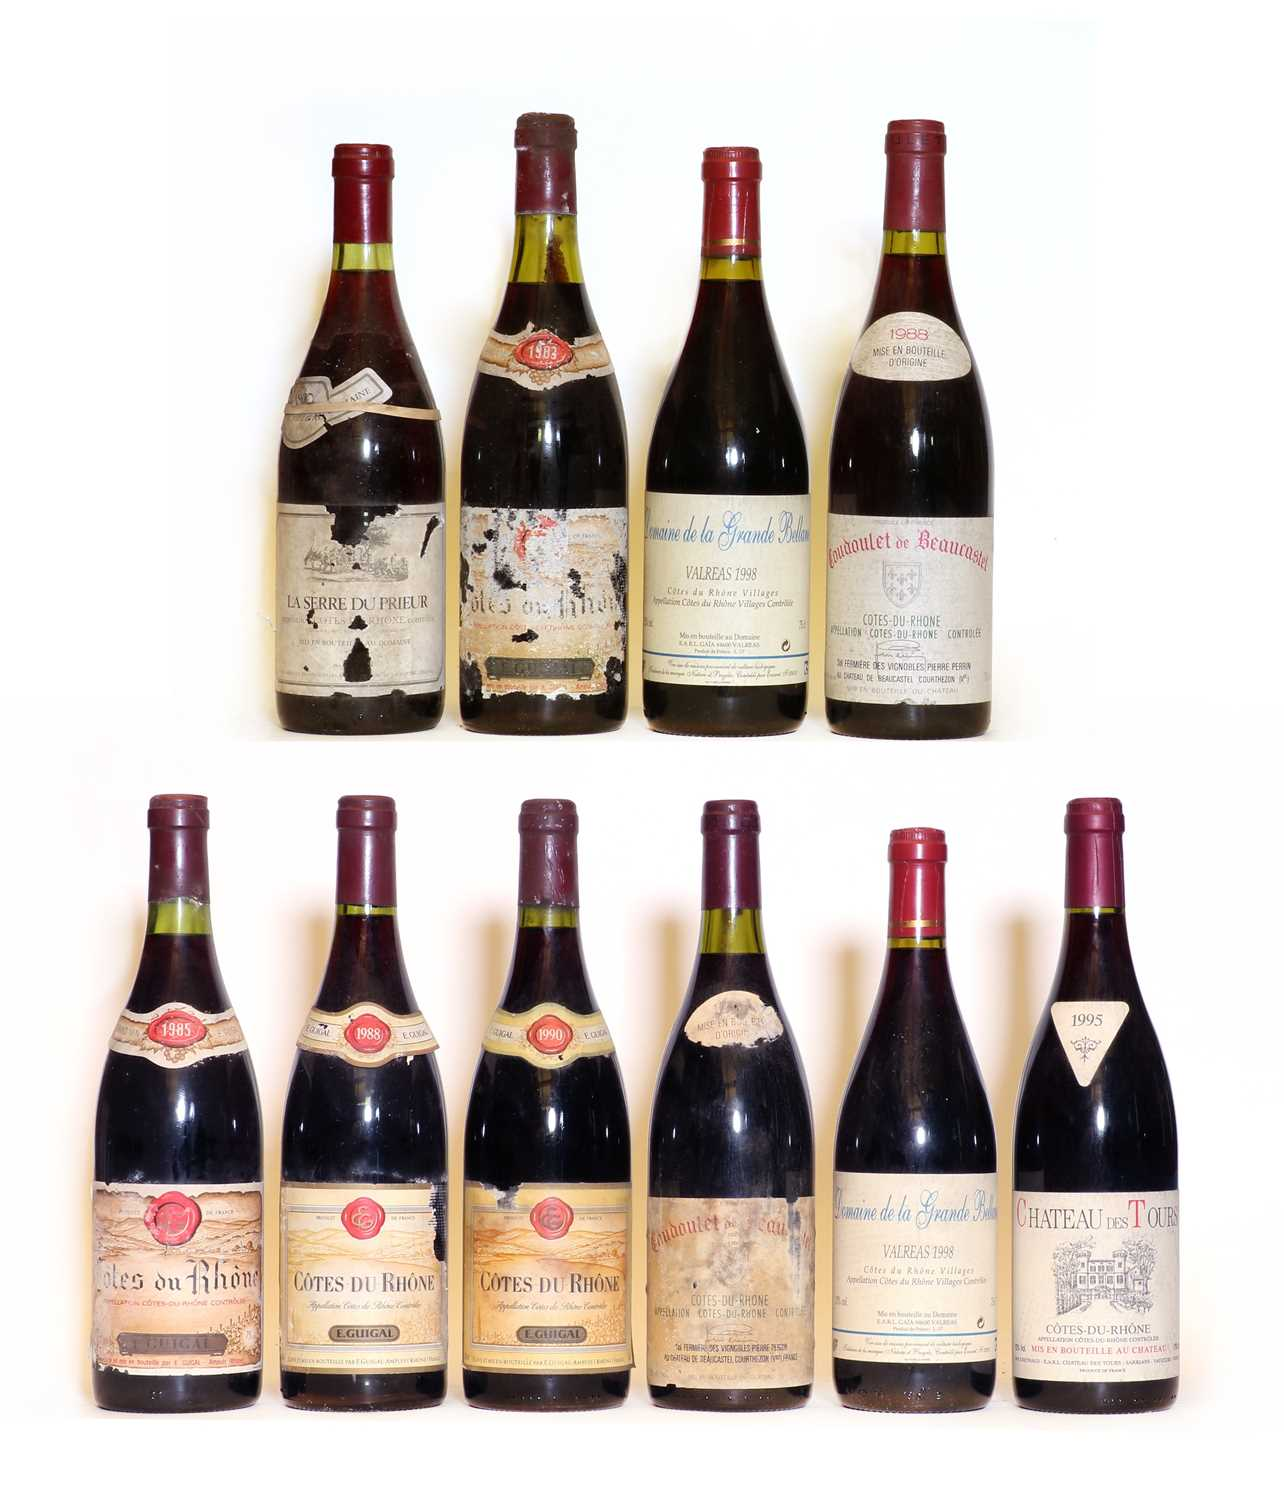 Assorted Cote du Rhone: Chateau des Tours, E. Reynaud, 1995, one bottle and nine various others